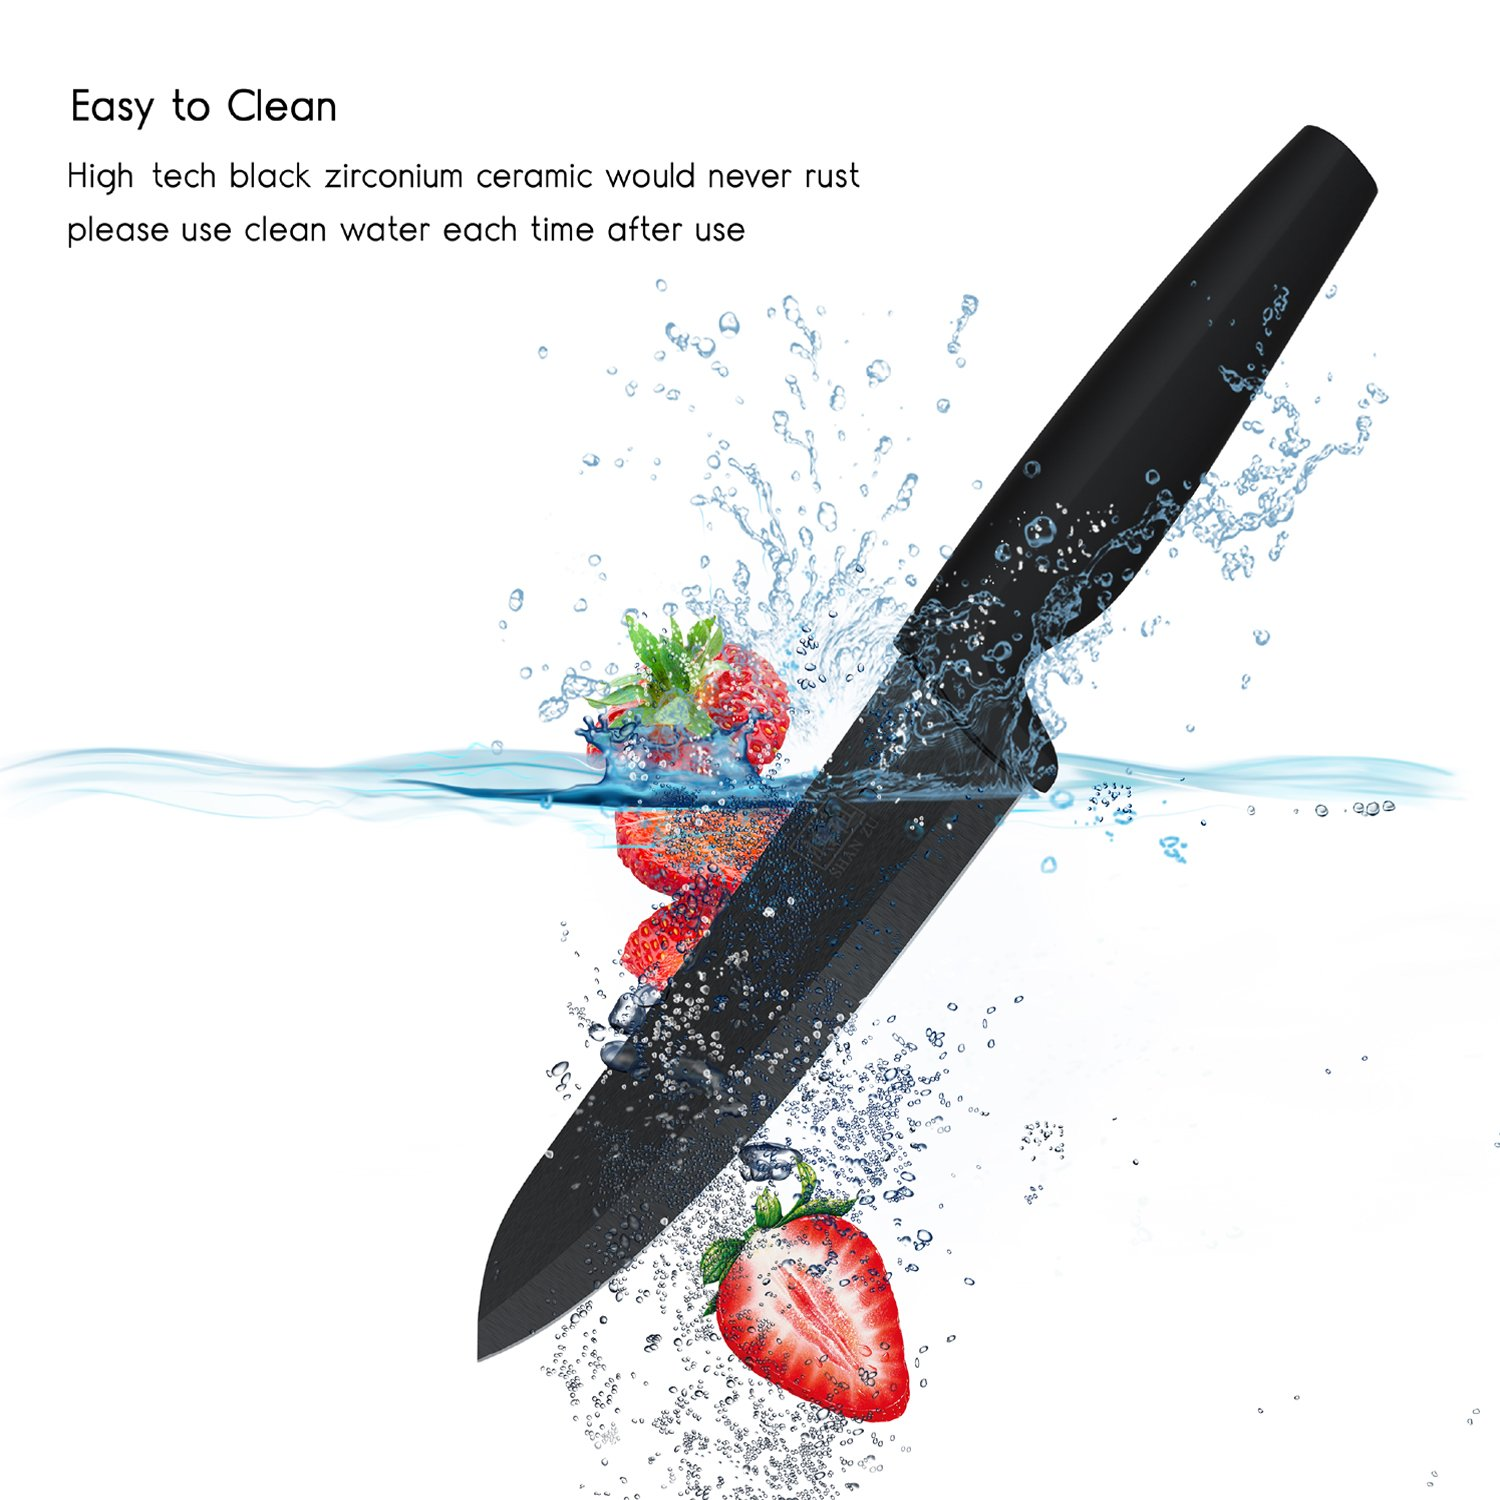 Ceramic Knife Set Black Professional 3 Pieces Sharp Knives with Sheaths by SHAN ZU (Image #5)